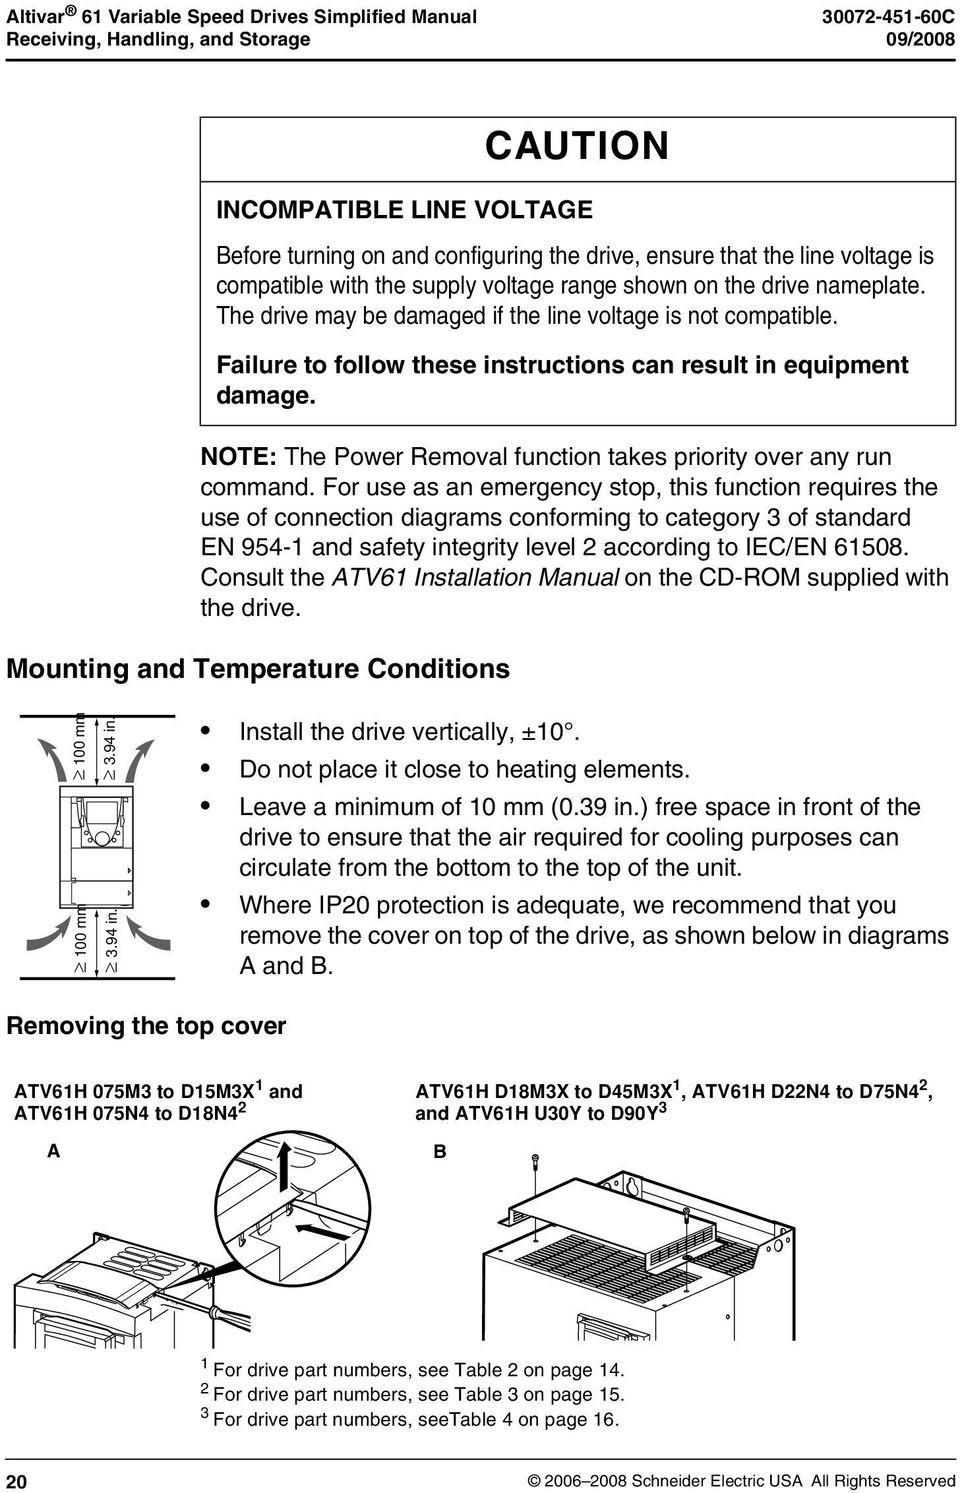 altivar 61 variable speed drives simplified manual pdfconsult the atv61 installation manual on the cd rom supplied with the drive